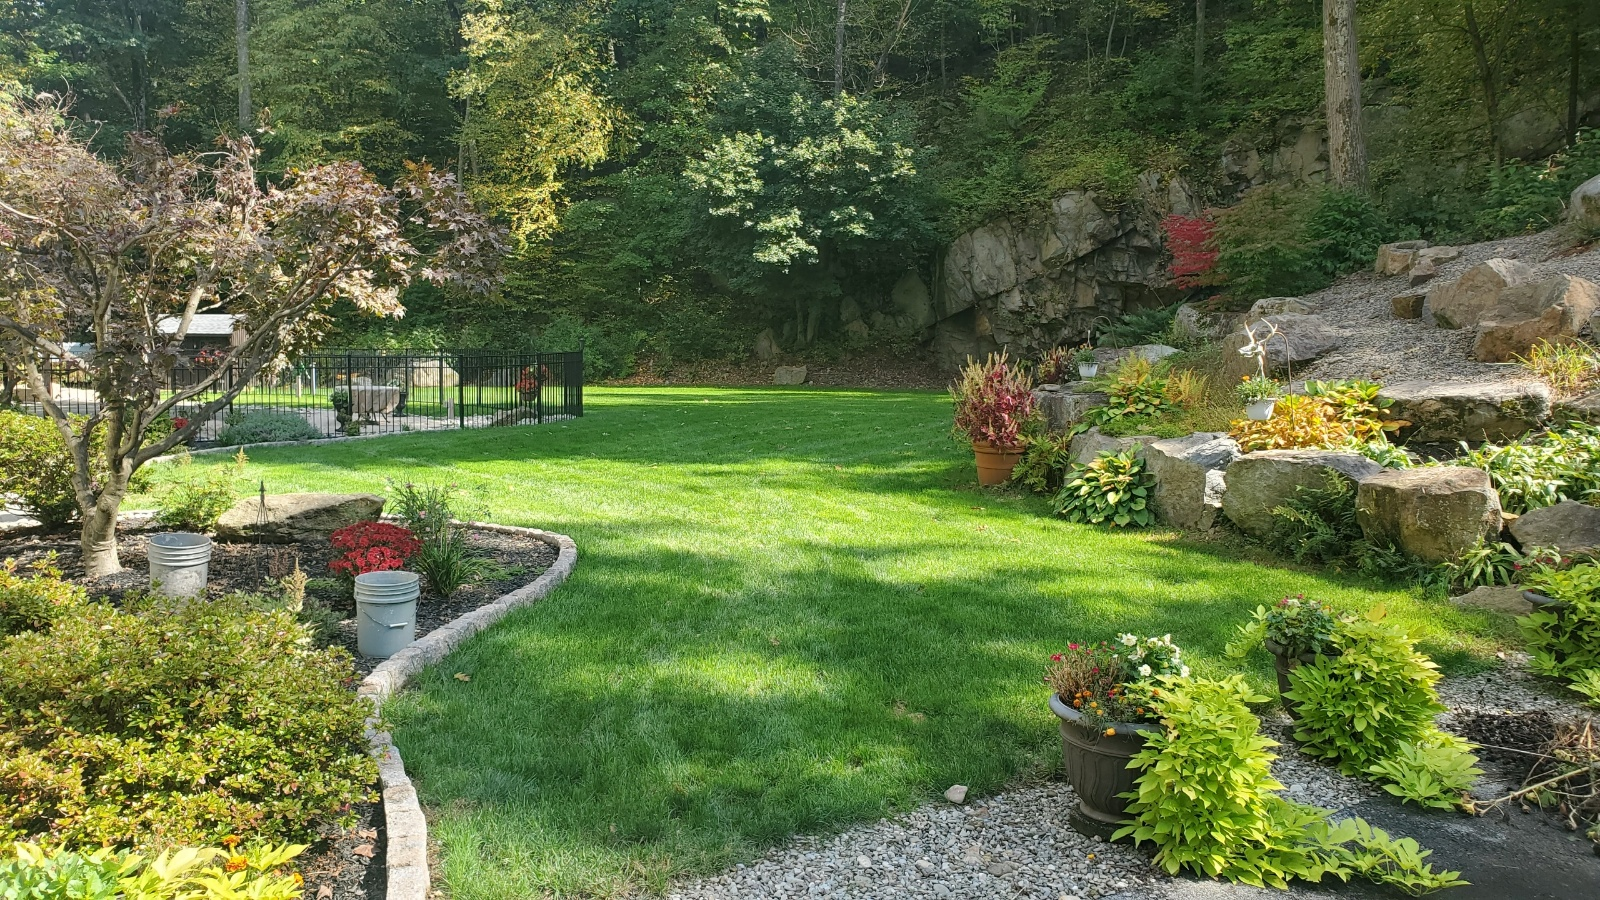 Emmaus, PA after photo of lawn